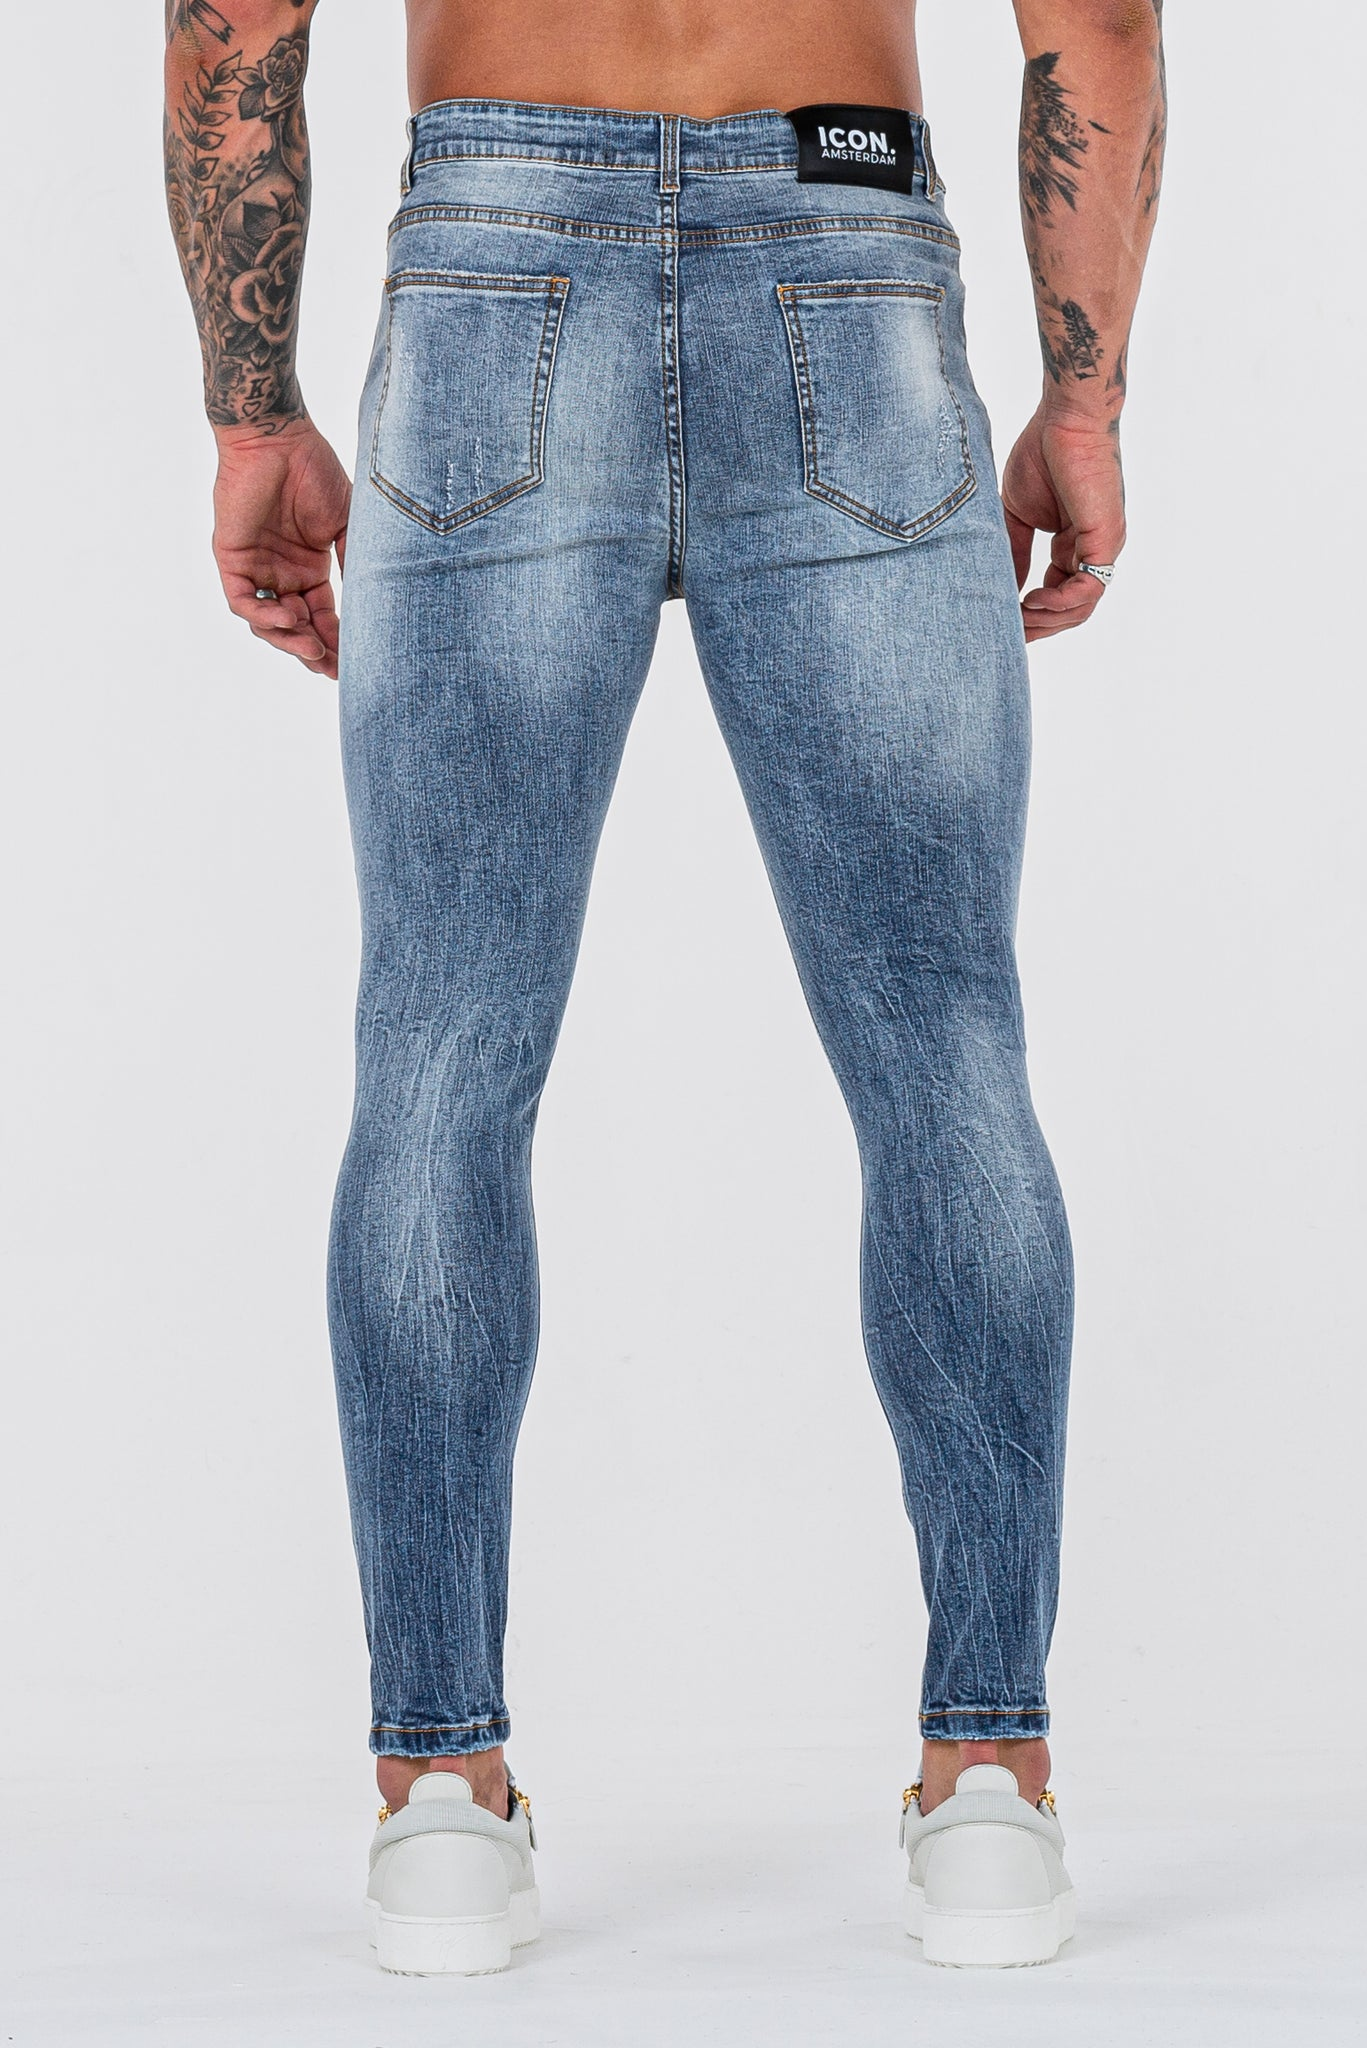 THE GATO JEANS - STEEL BLUE